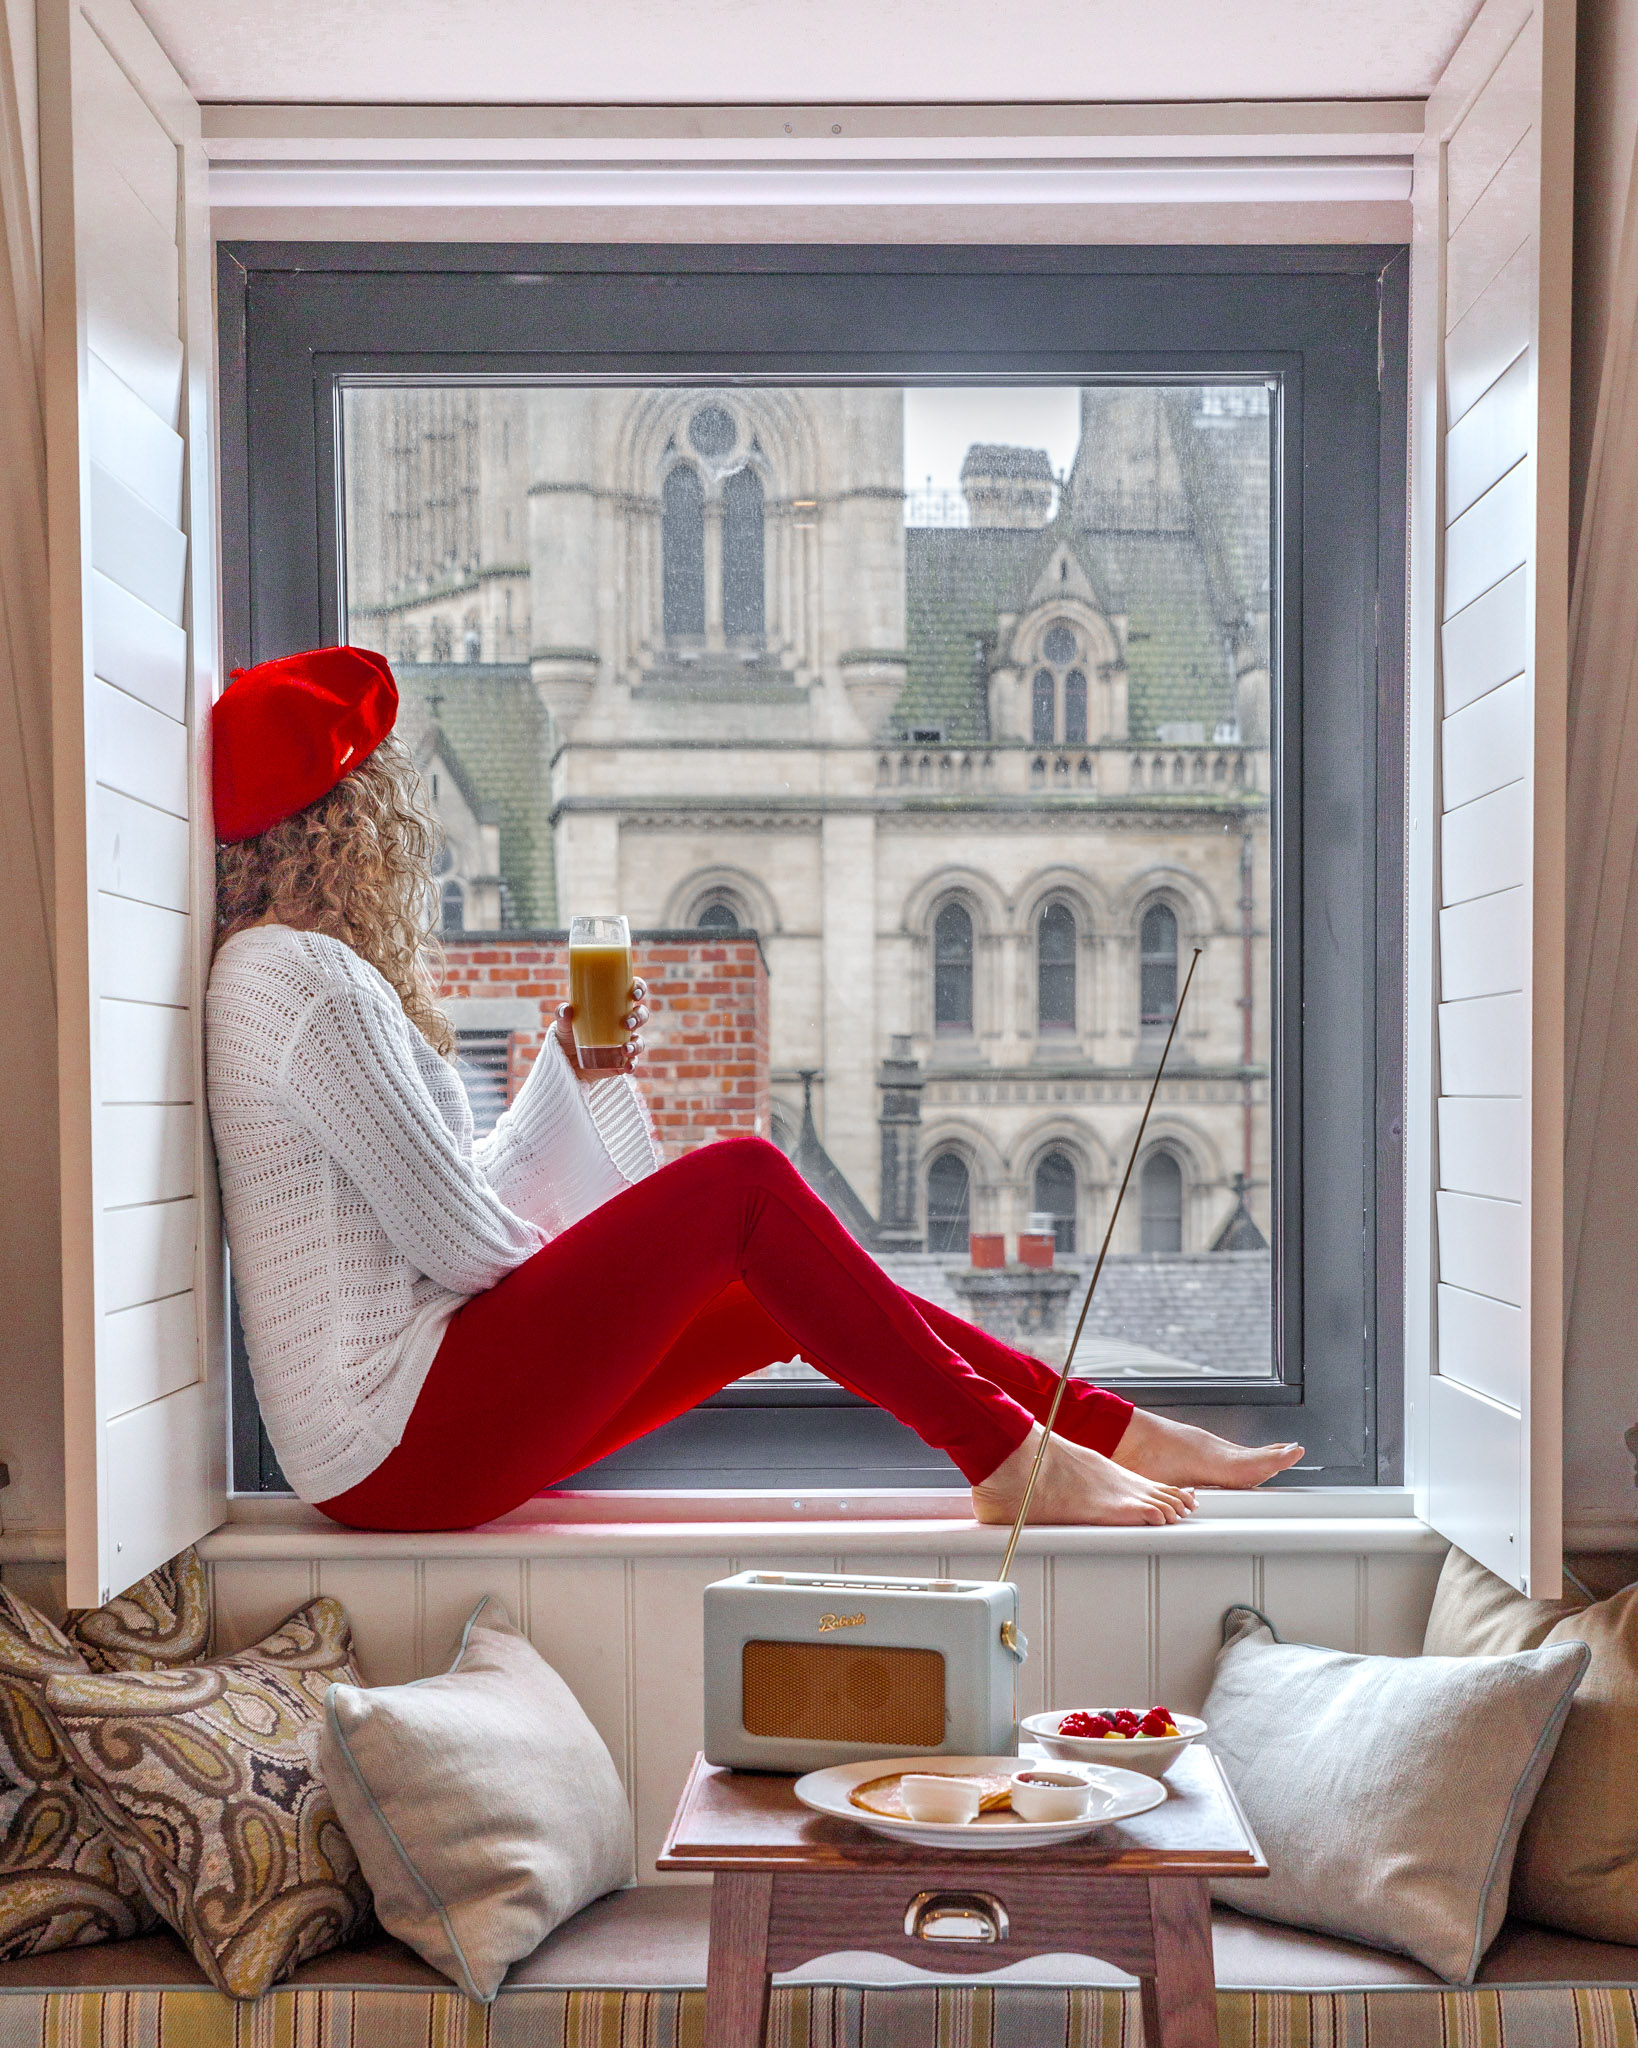 The cute rooms with a view at King Street Townhouse in Manchester // 11 INSTAGRAM-WORTHY PHOTO SPOTS IN MANCHESTER, ENGLAND // www.readysetjetset.net #readysetjetset #manchester #england #uk #unitedkingdom #cityguide #travel